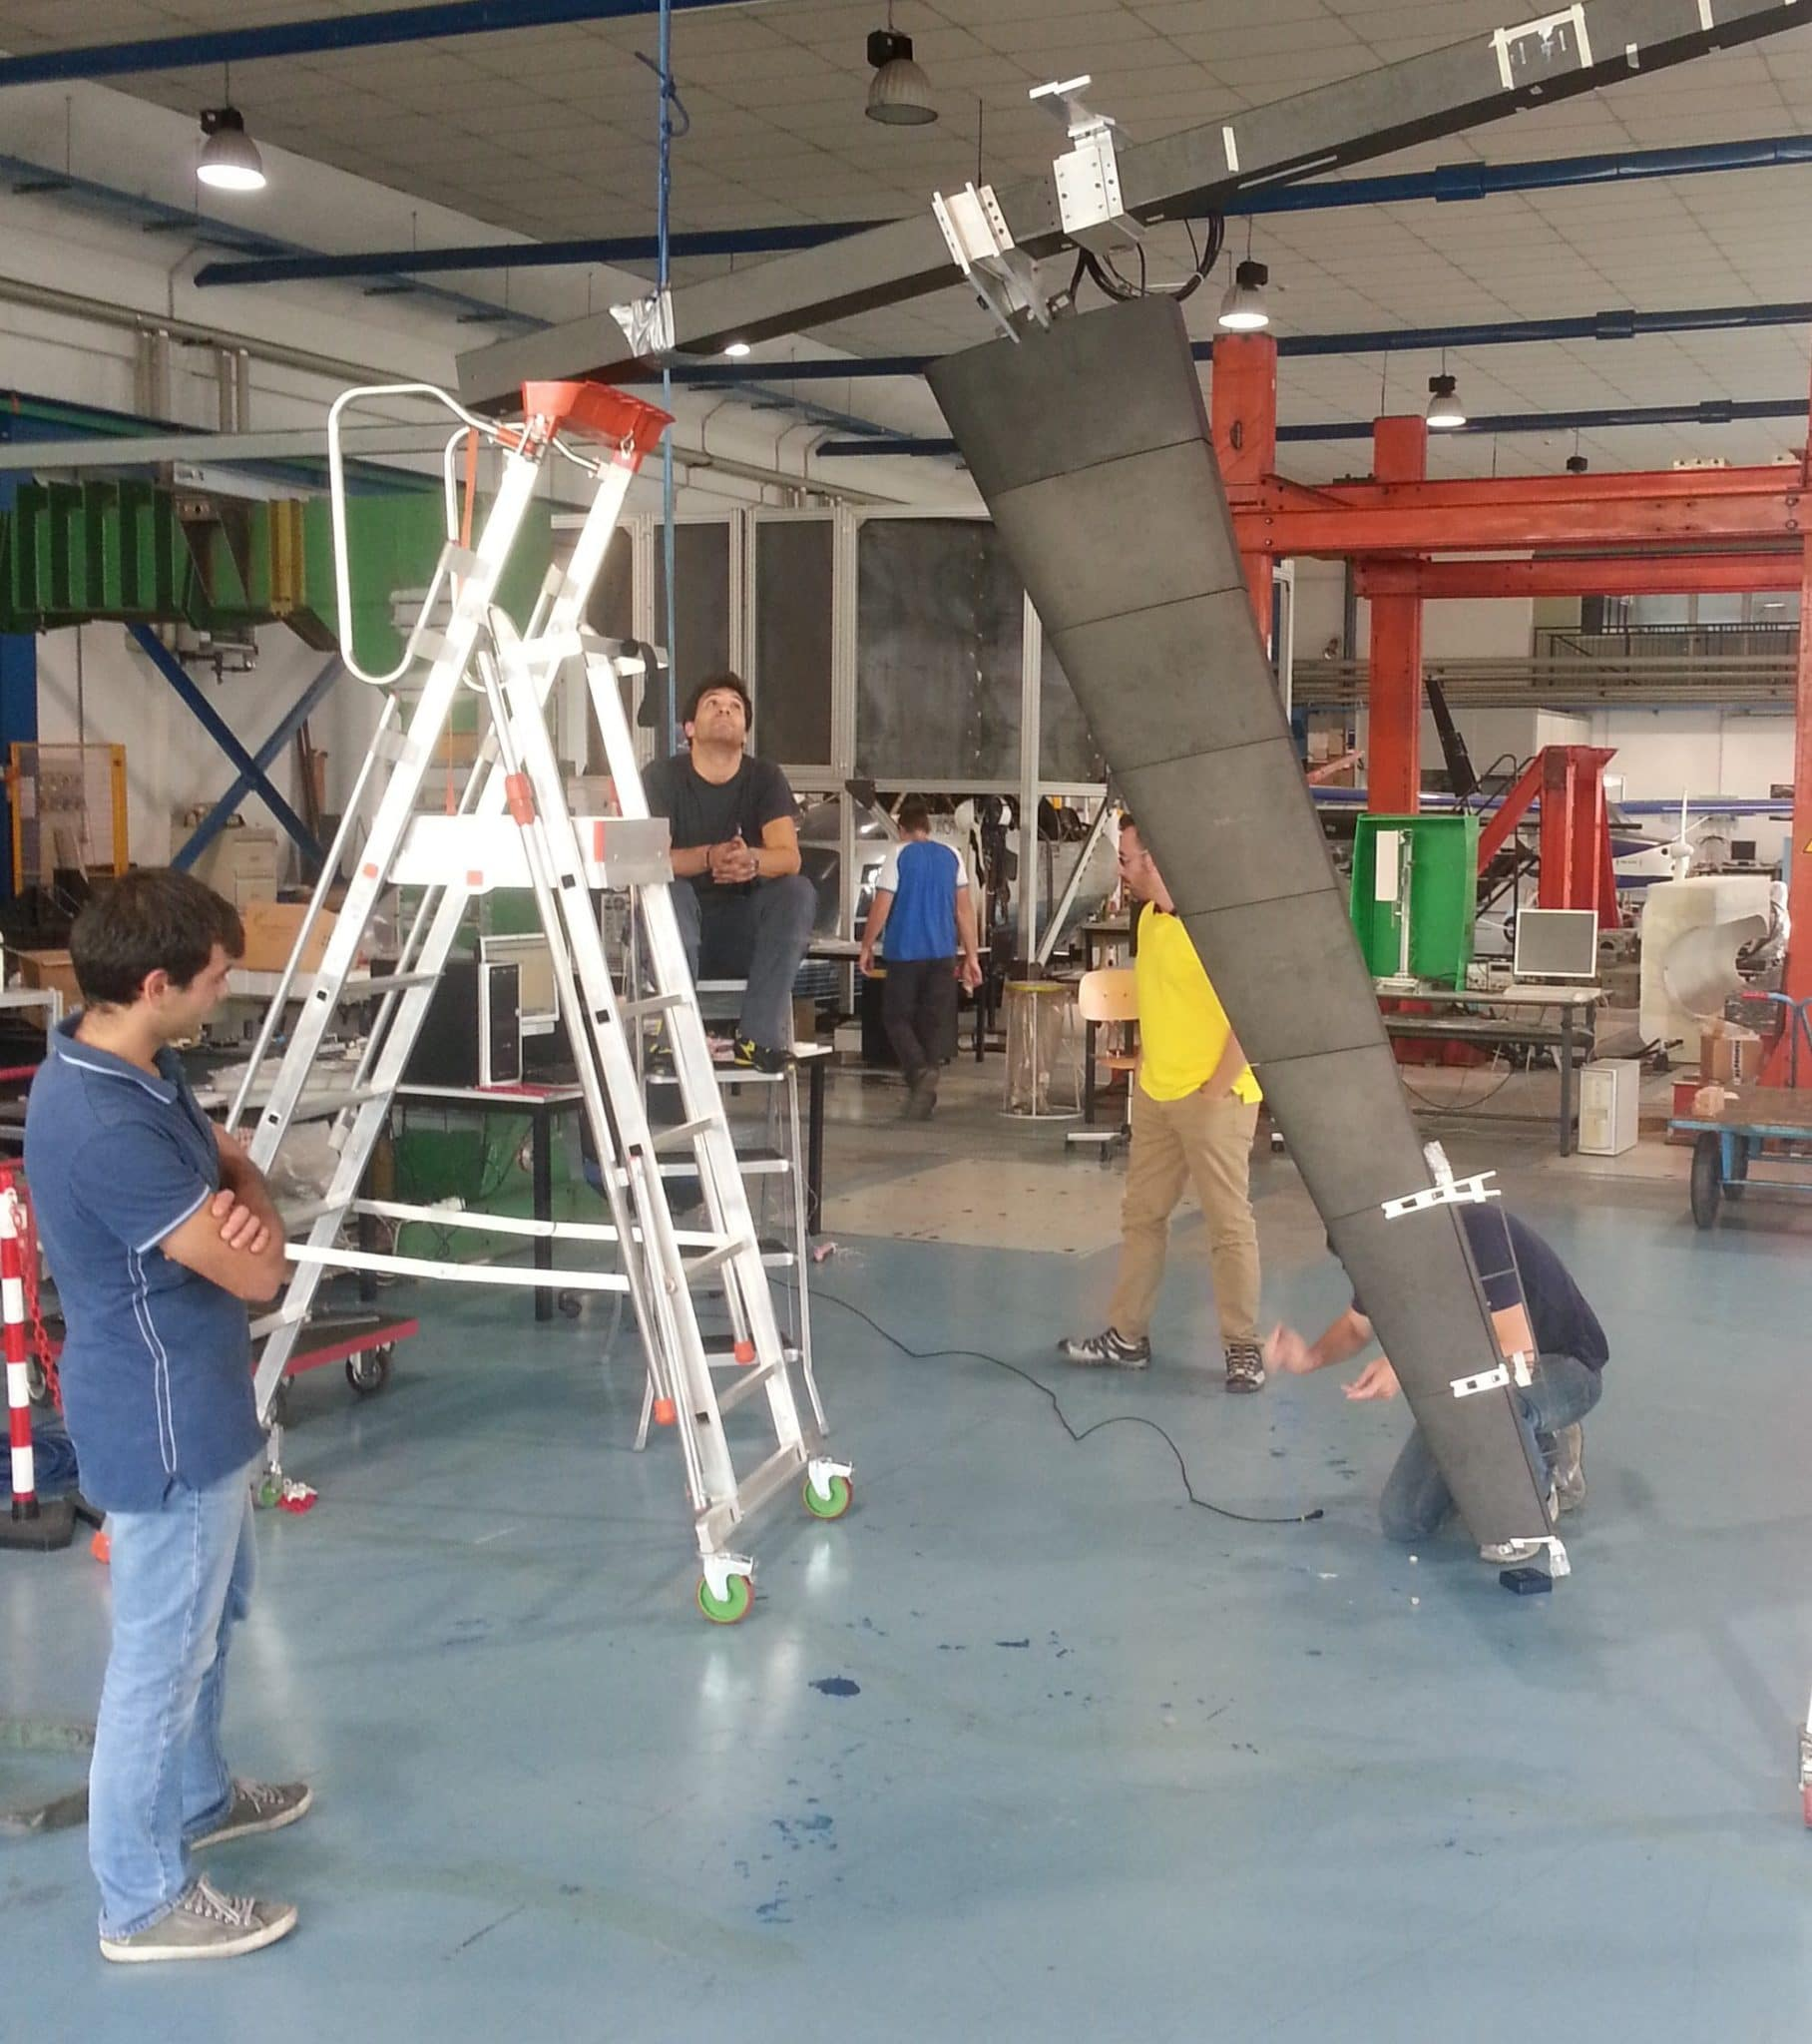 CRP Technology PoliMi wind tunnel